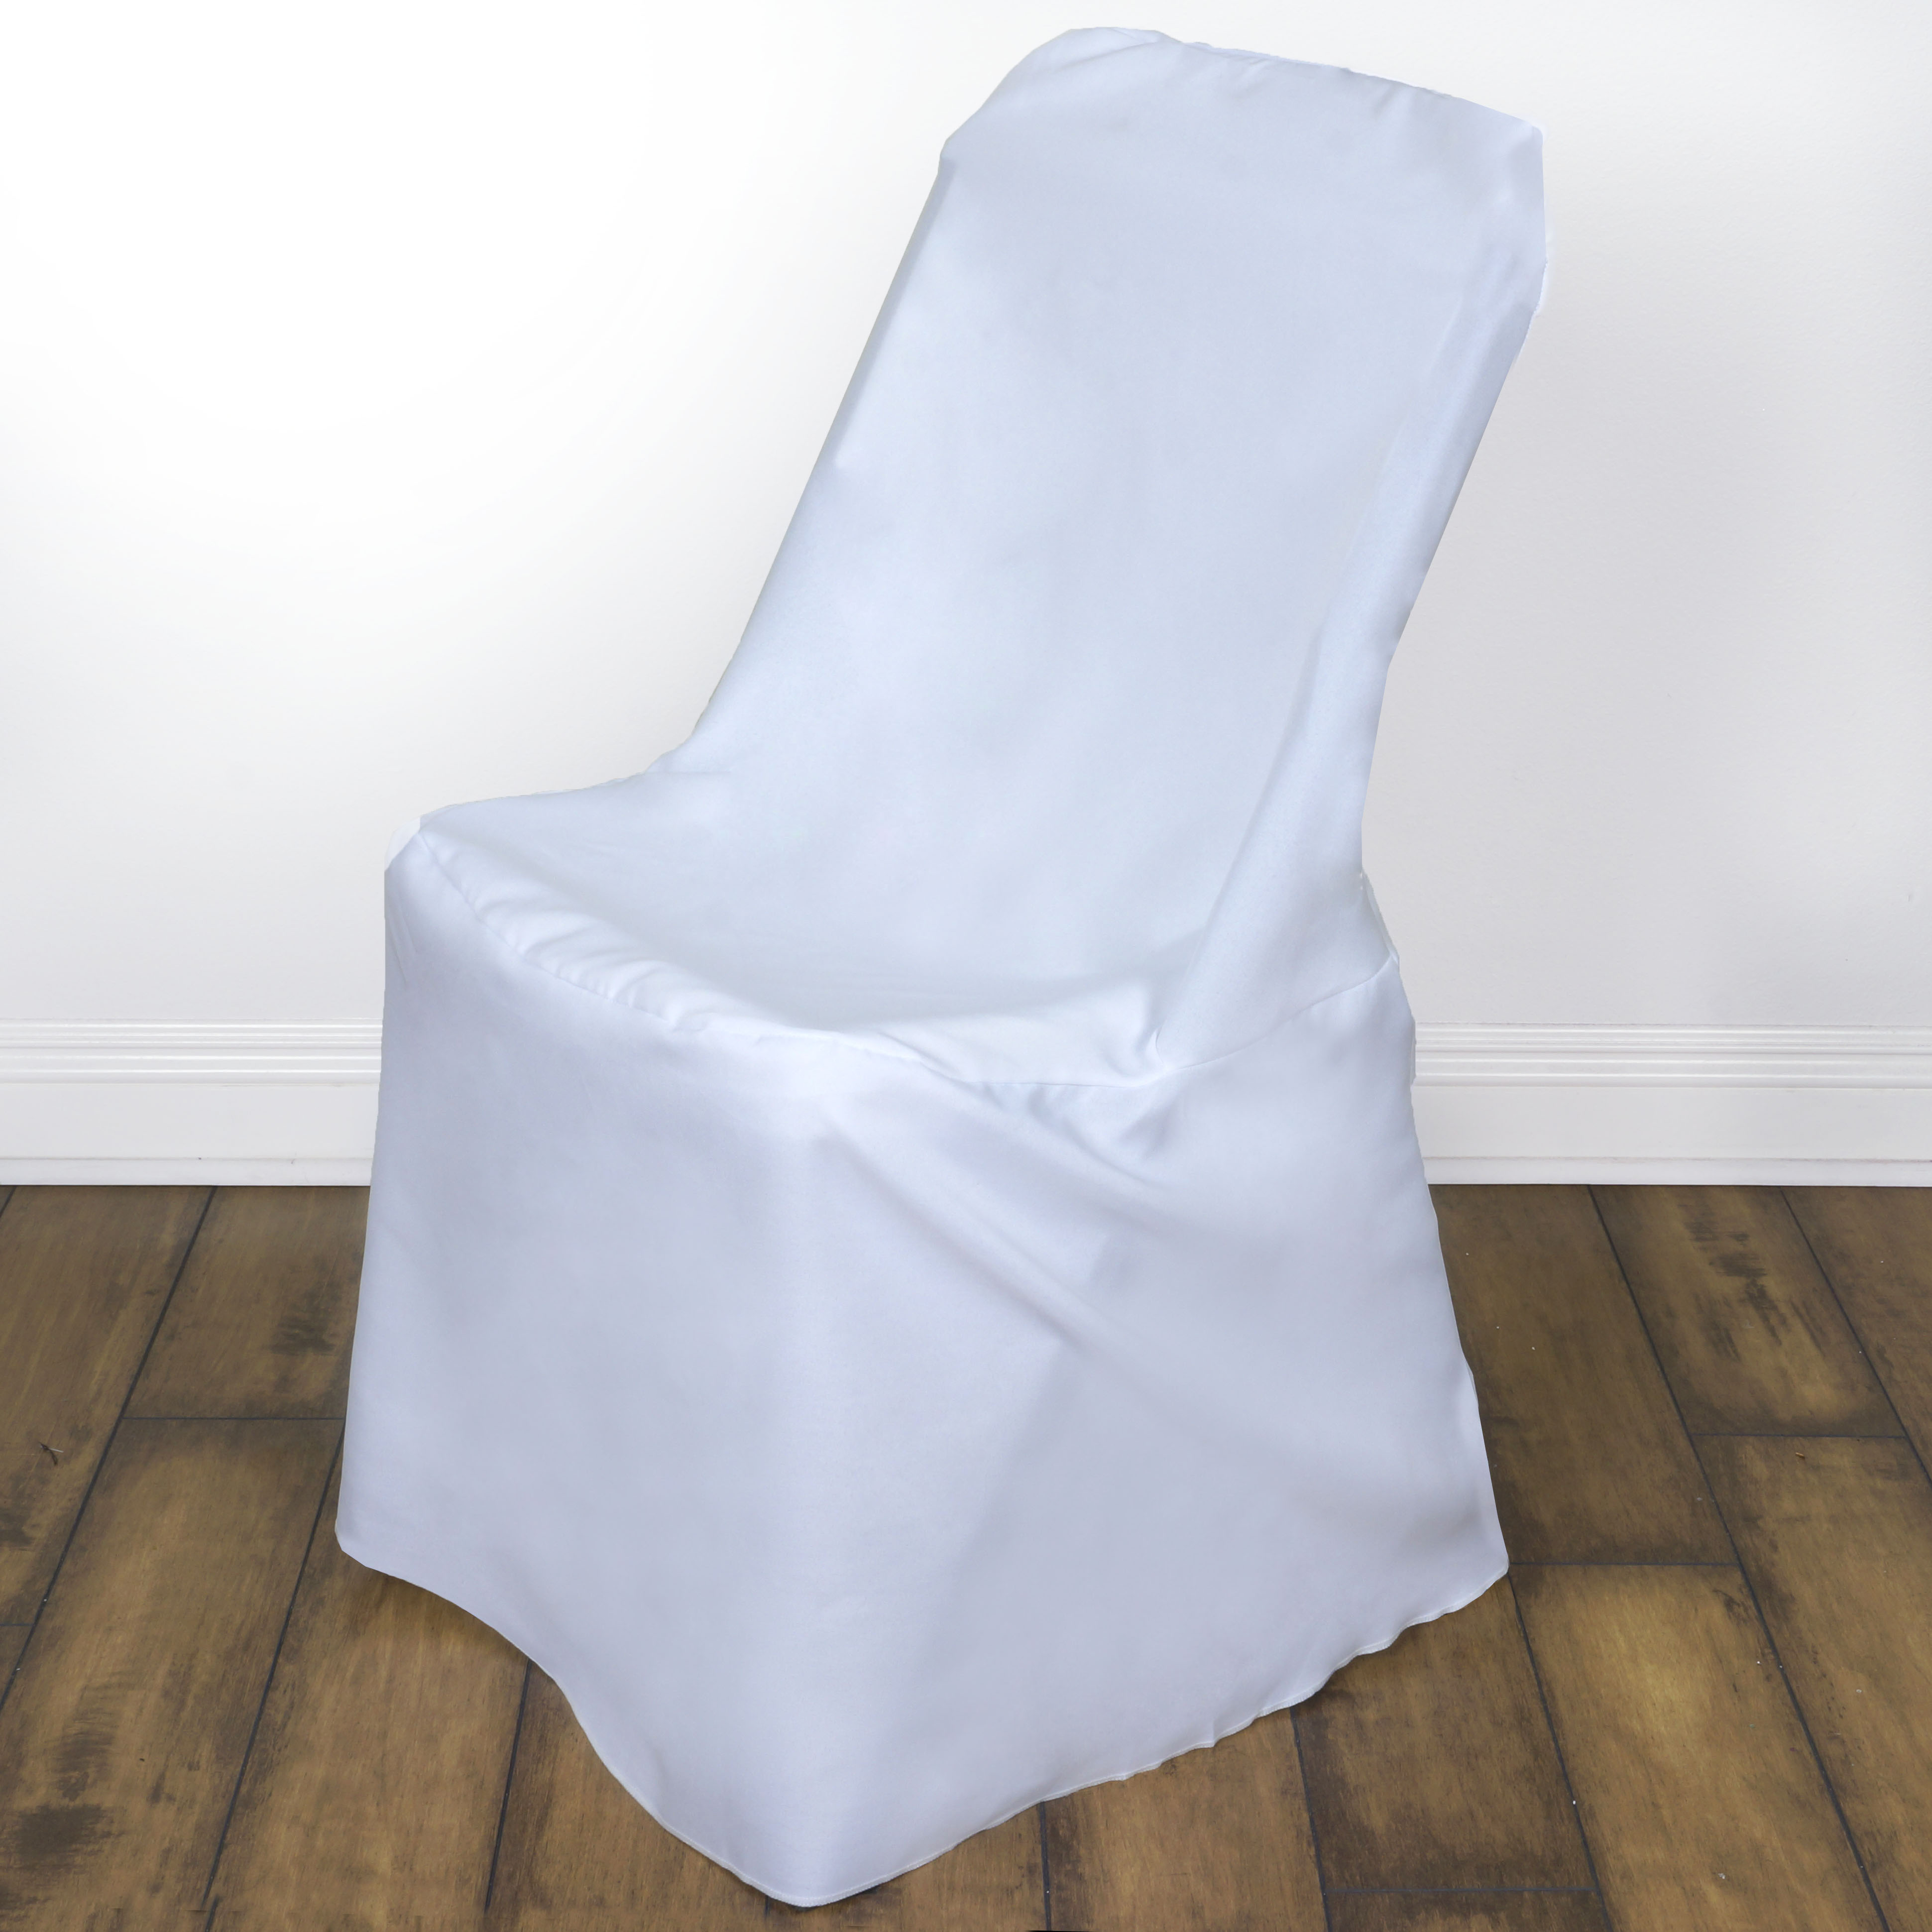 50 pcs LIFETIME Folding CHAIR COVERS Slipcovers Polyester Wedding Party Linen